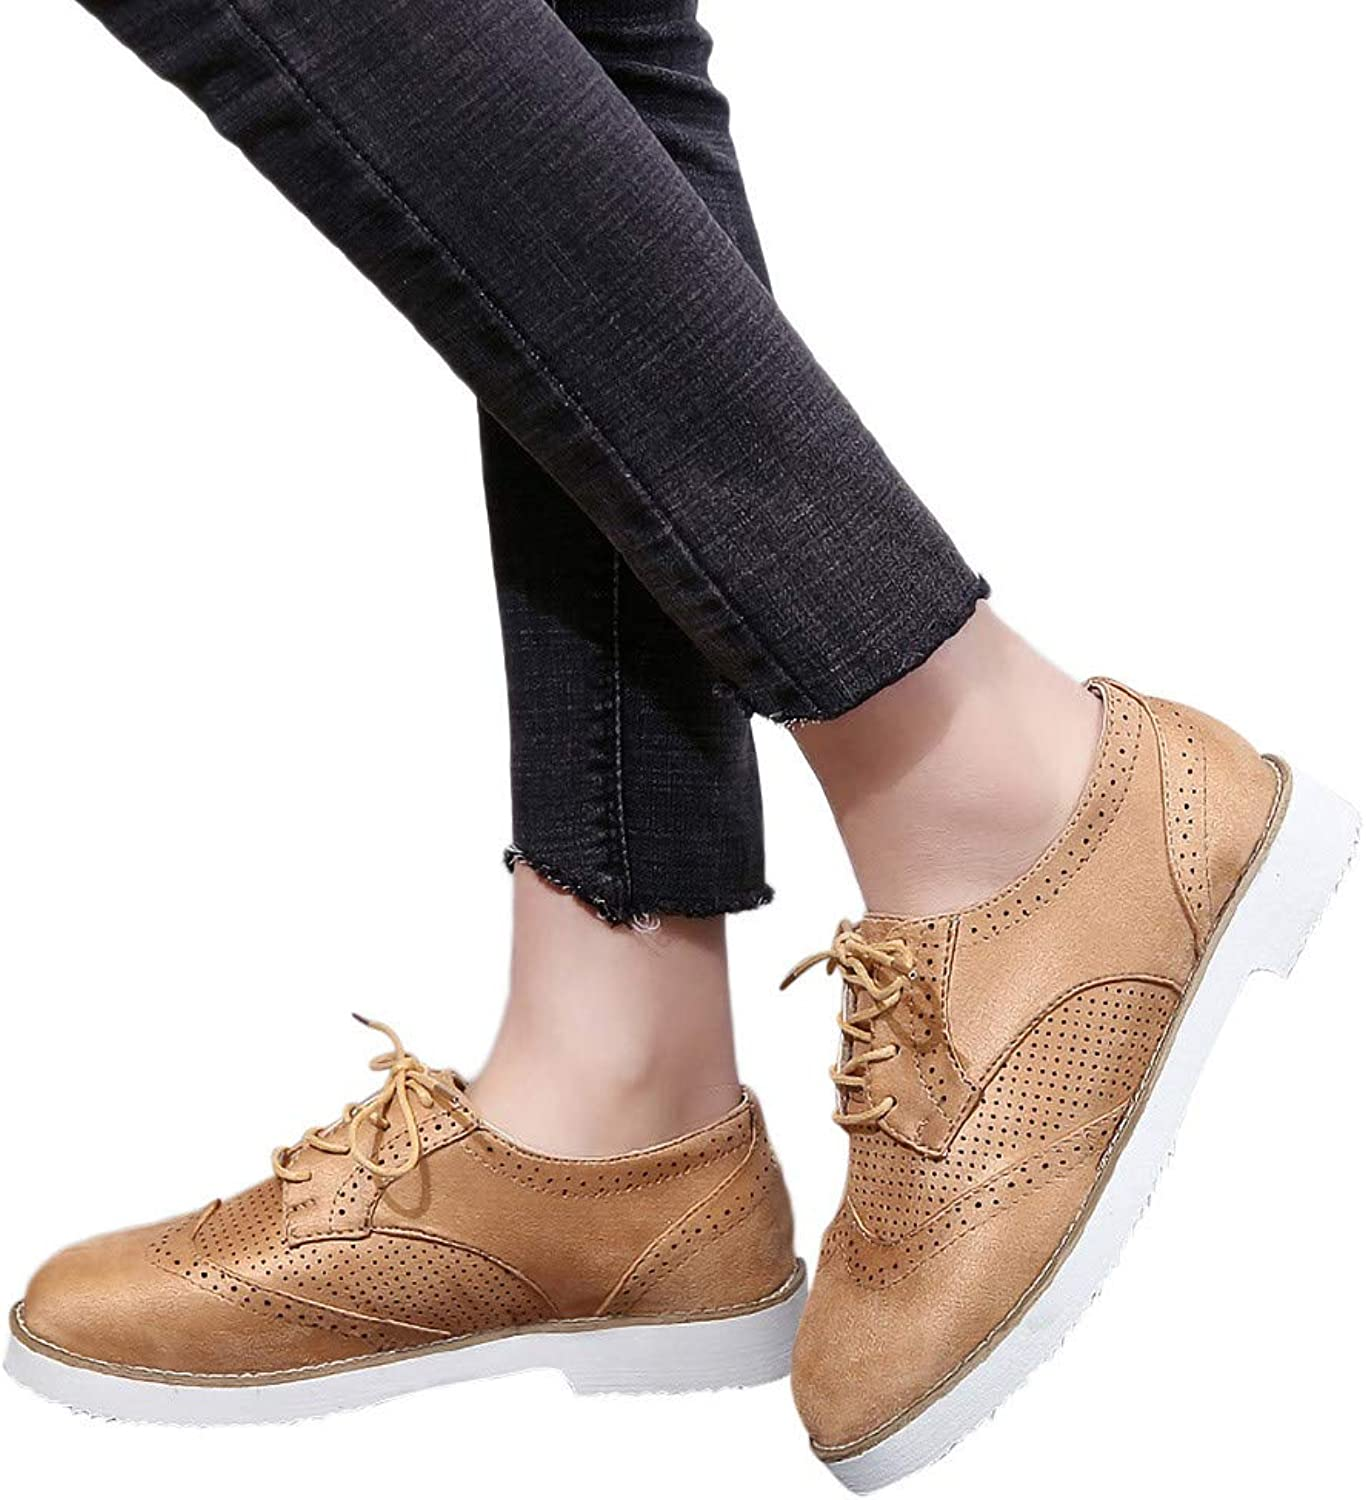 Fheaven 2019 Women's Classic Leather Pointed Toe Ankle Sneaker Lace up Dress shoes Sport shoes gold